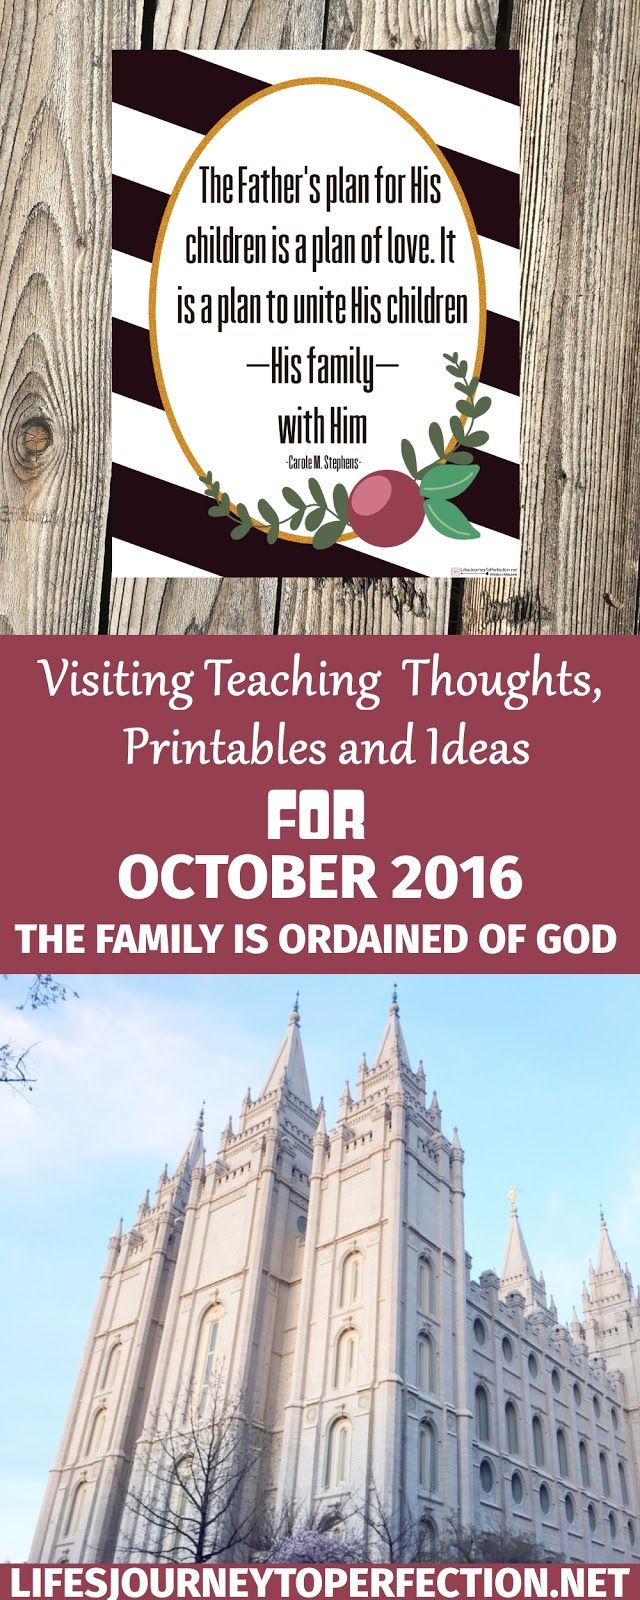 VISITING TEACHING IDEAS, PRINTABLES AND THOUGHTS FOR OCTOBERS VISITING TEACHING MESSAGE, THE FAMILY IS ORDAINED OF GOD